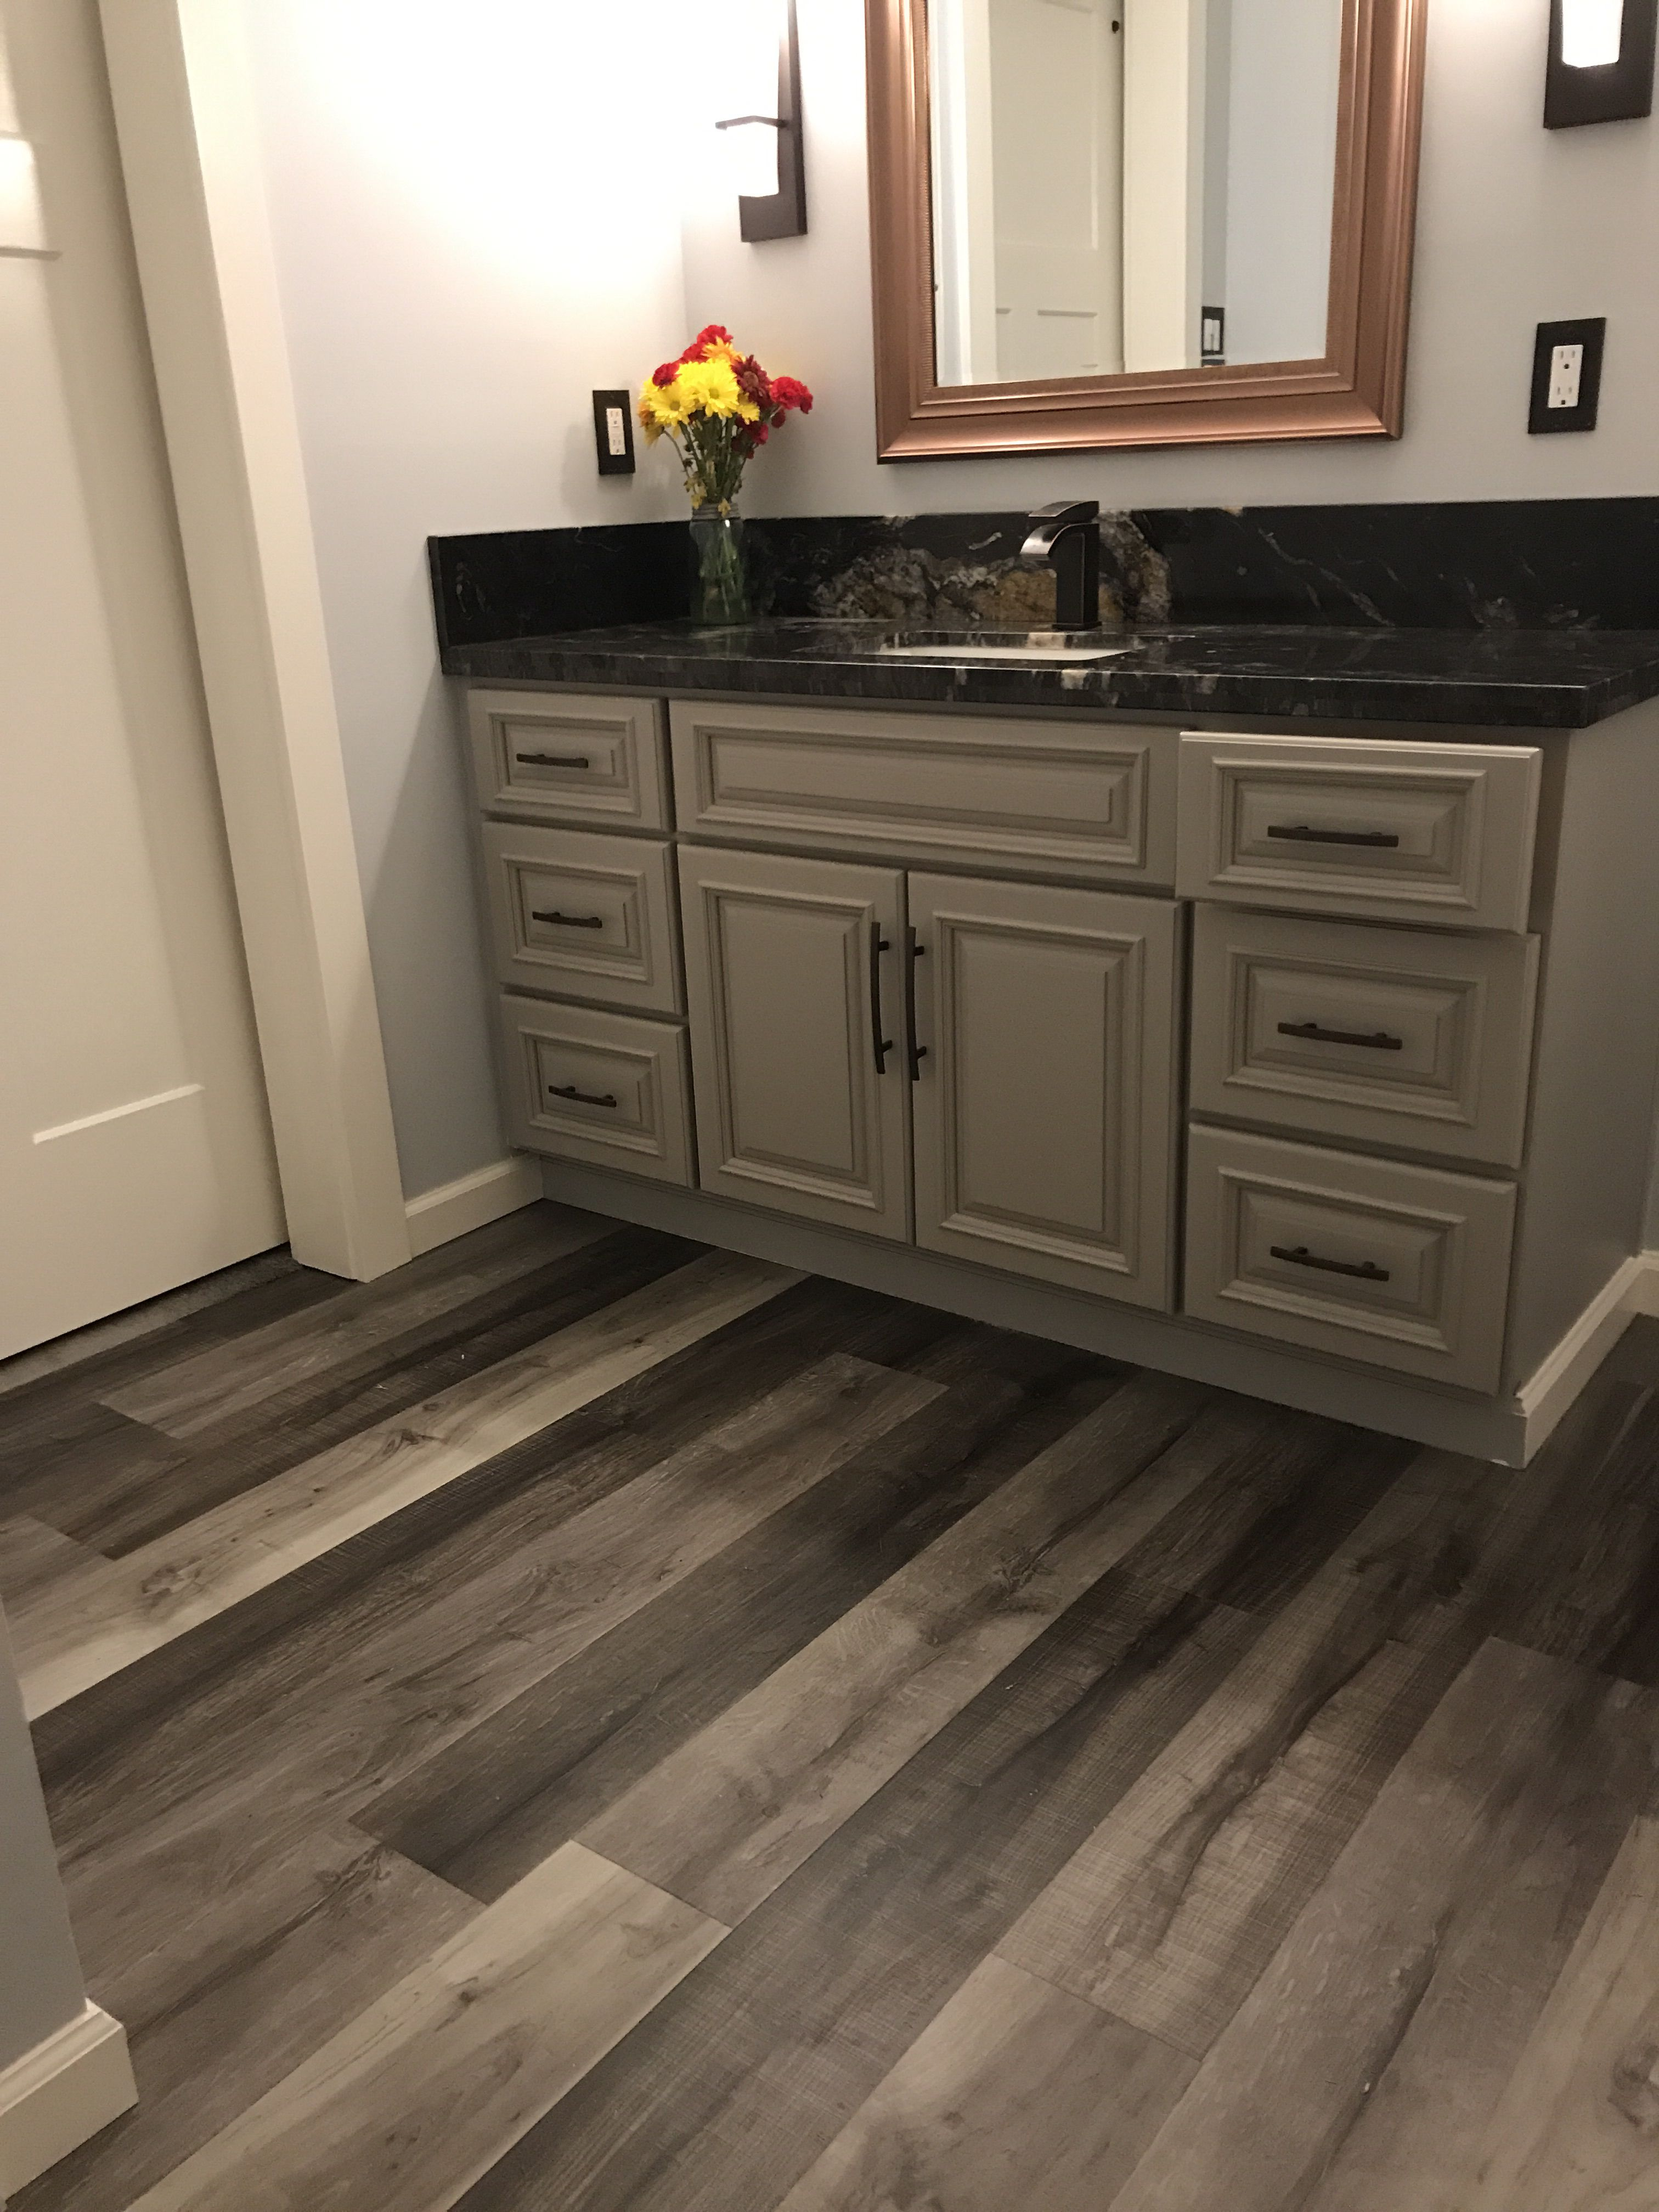 We Did It Luxury Vinyl Plank Cork Backed 100 Water Proof Flooring We Also Added A Cork Underpayment And Kaye Luxury Vinyl Plank Bathroom Redo Vinyl Plank